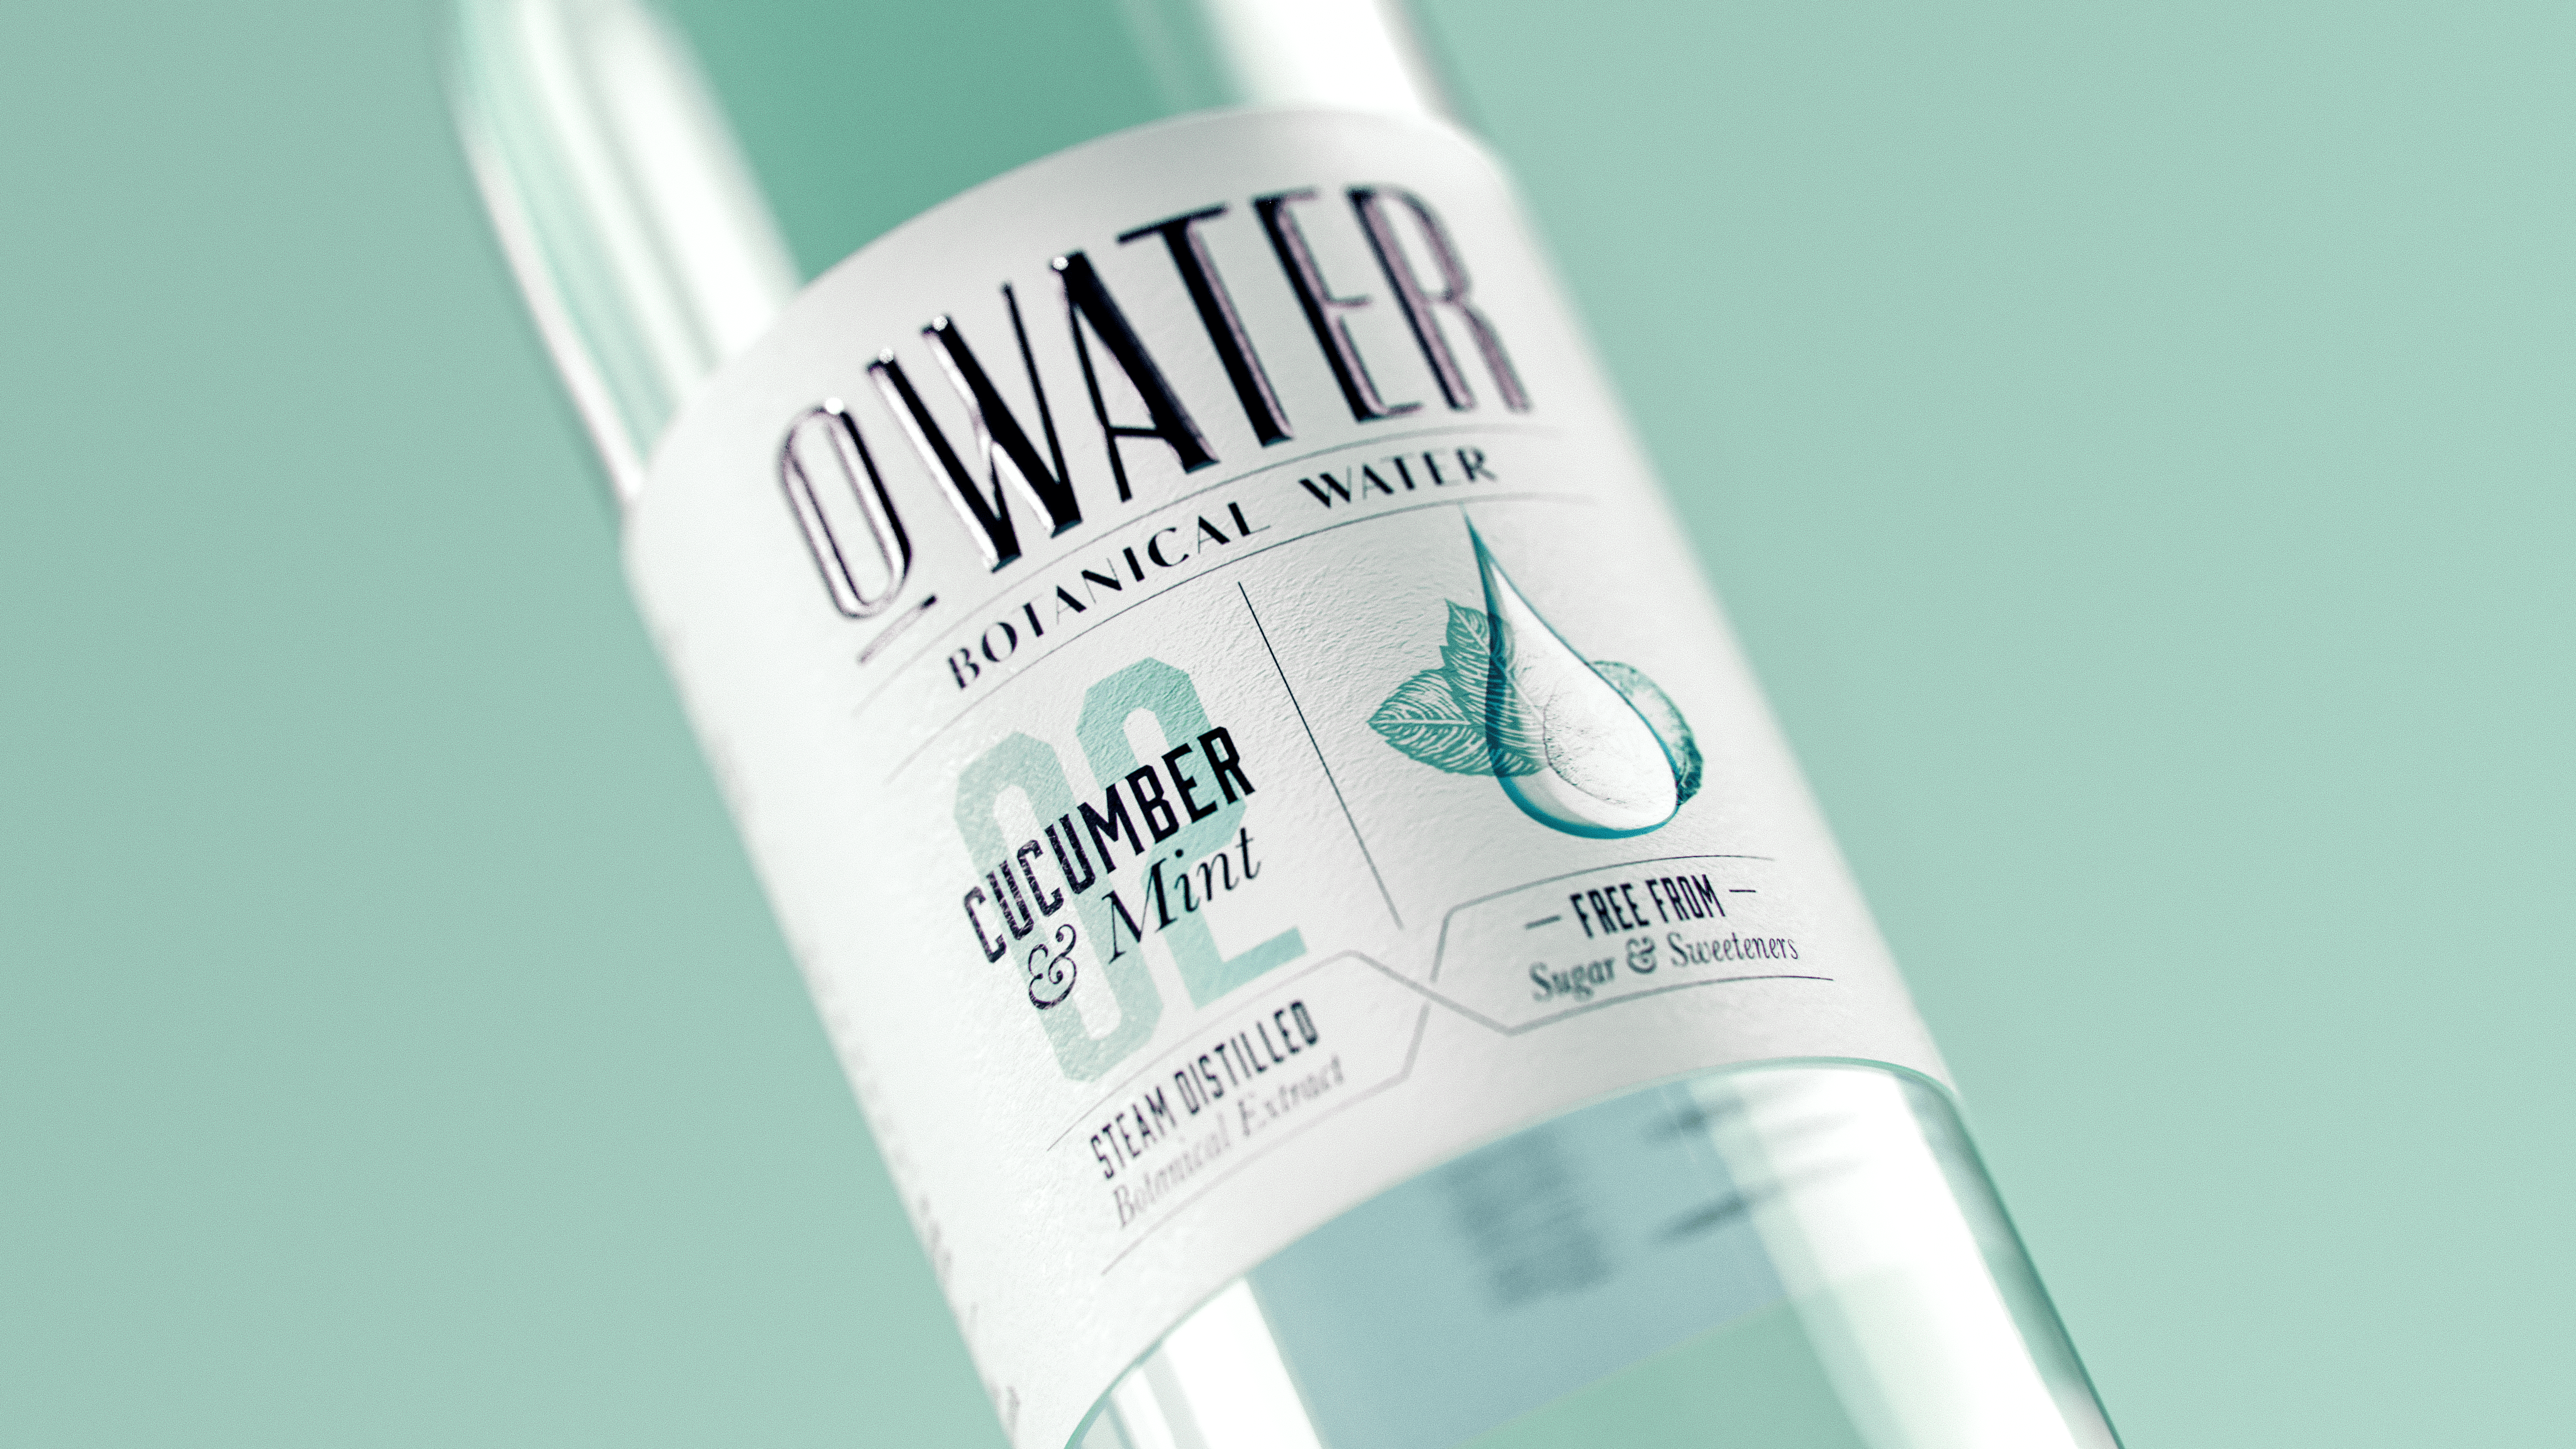 OWATER_ANGLE_4K-min